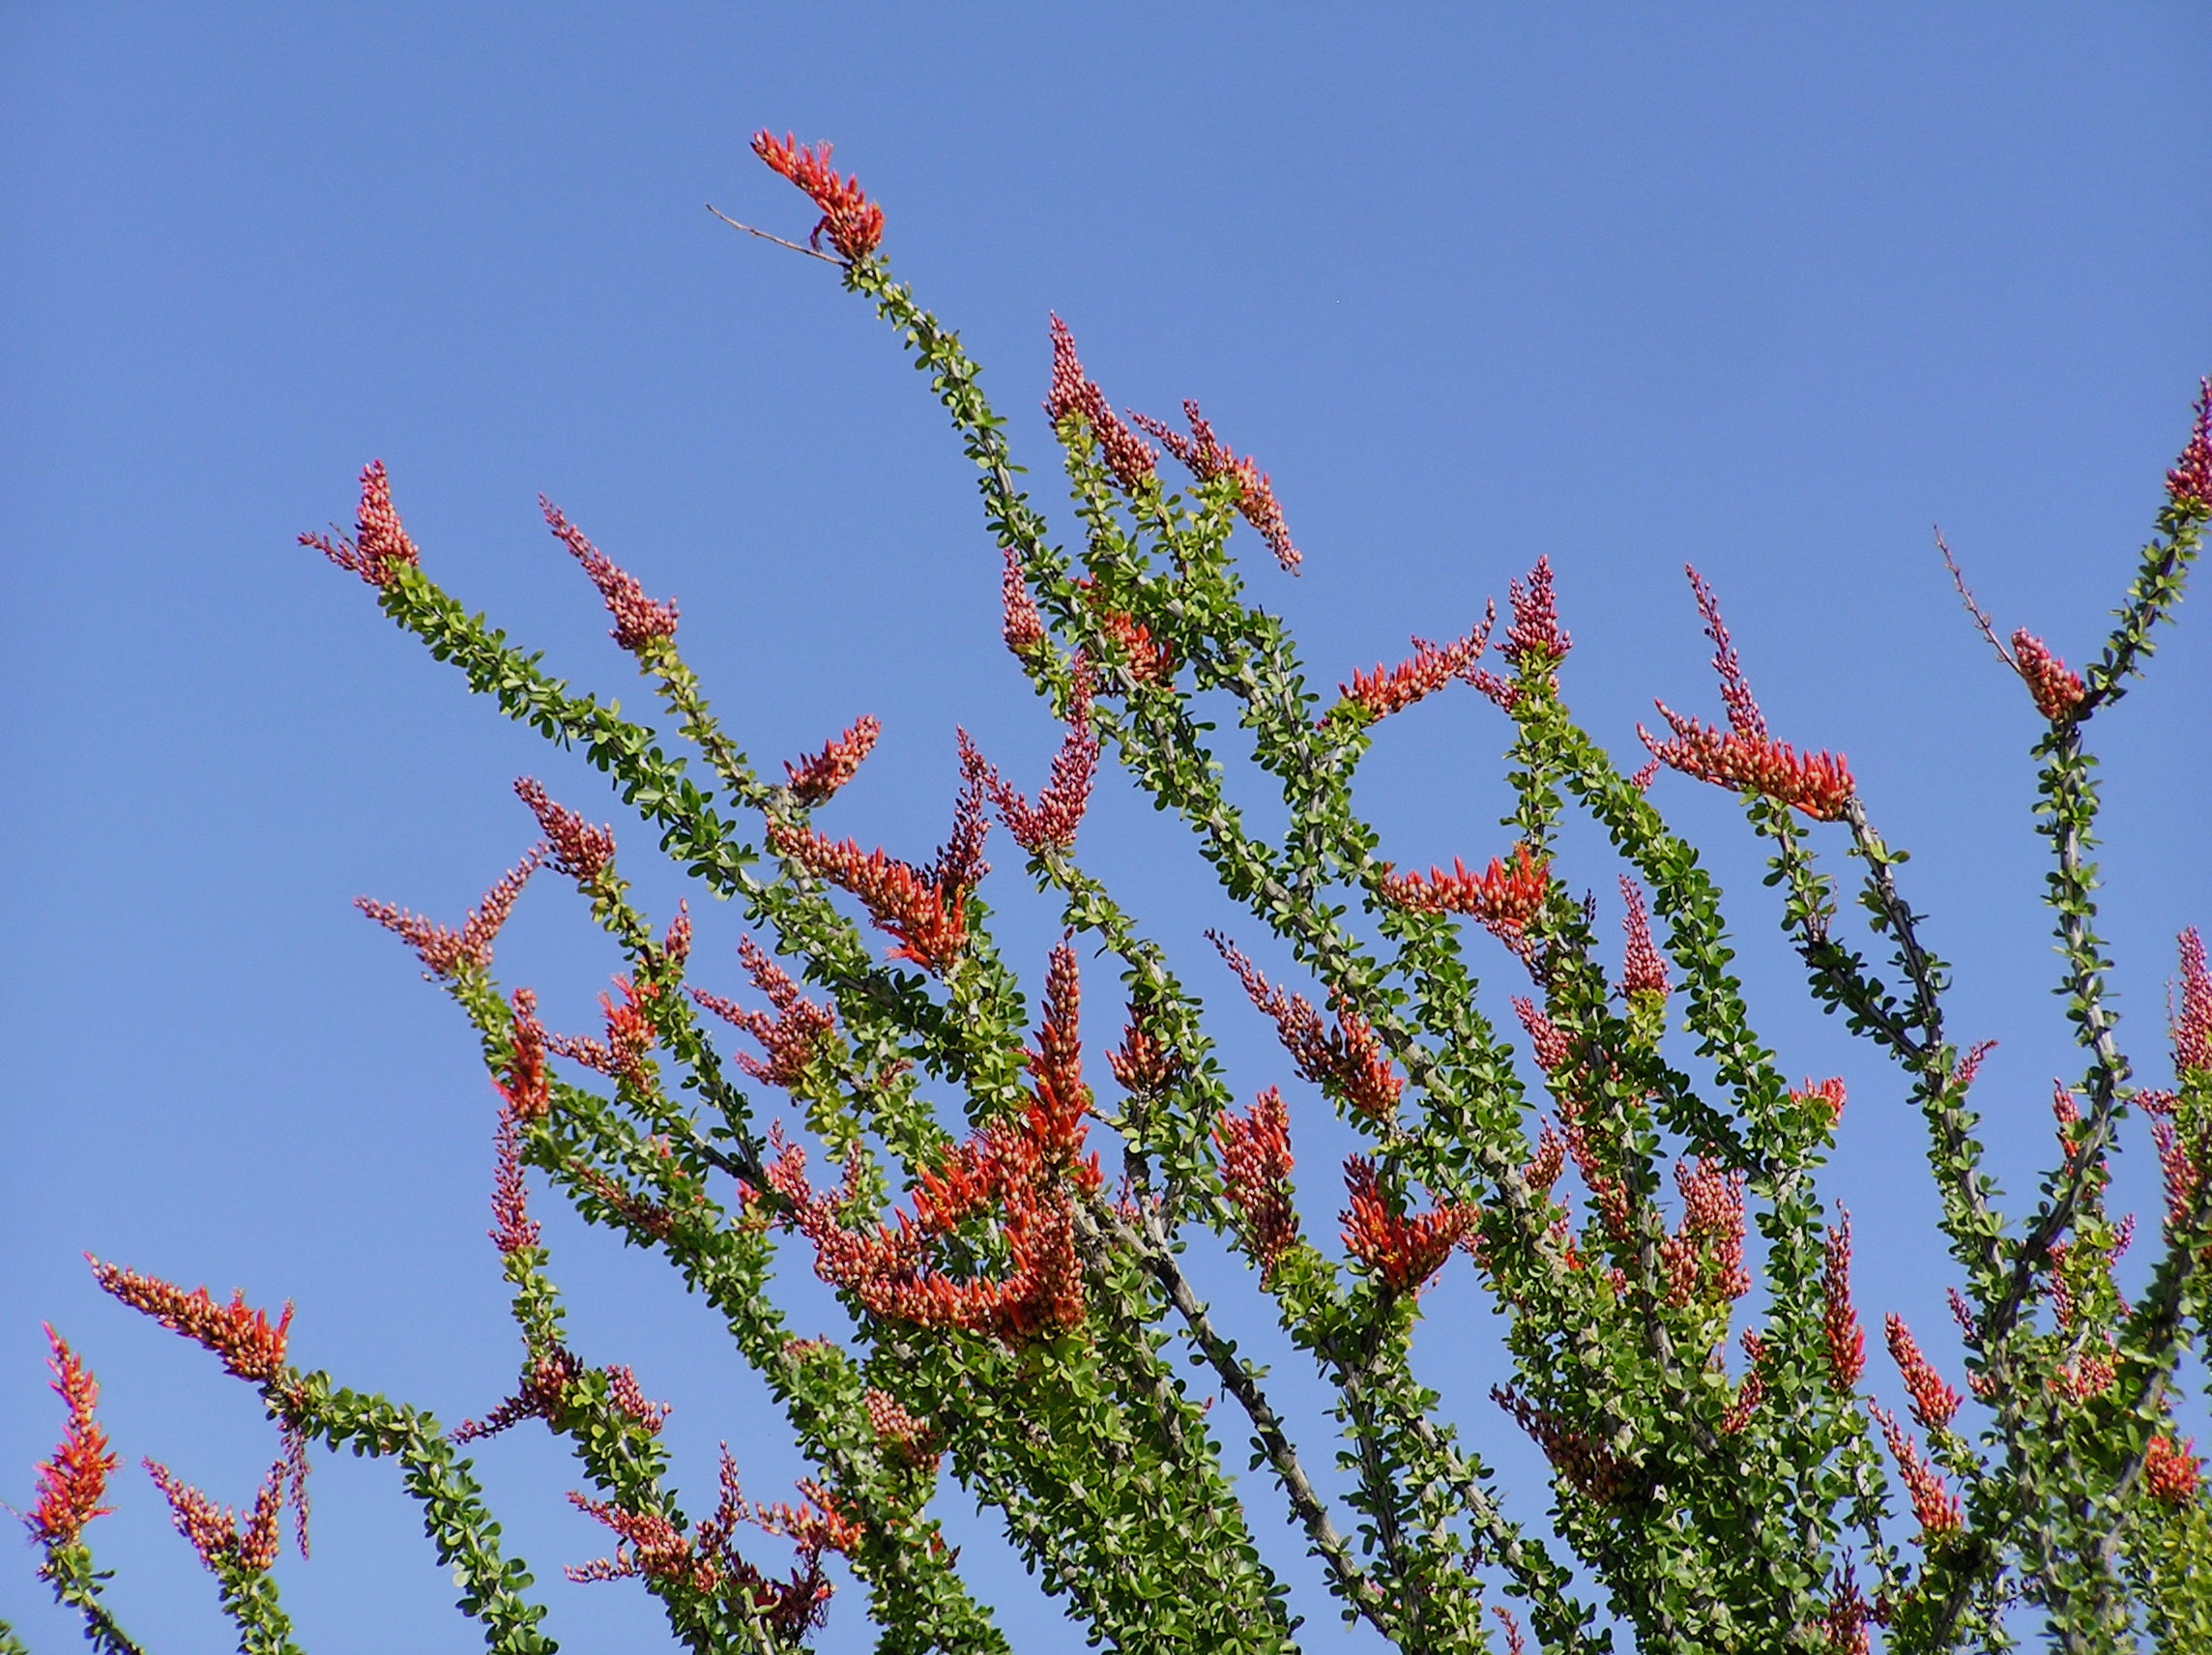 Arizona ocotillo in bloom; photo E. Shock